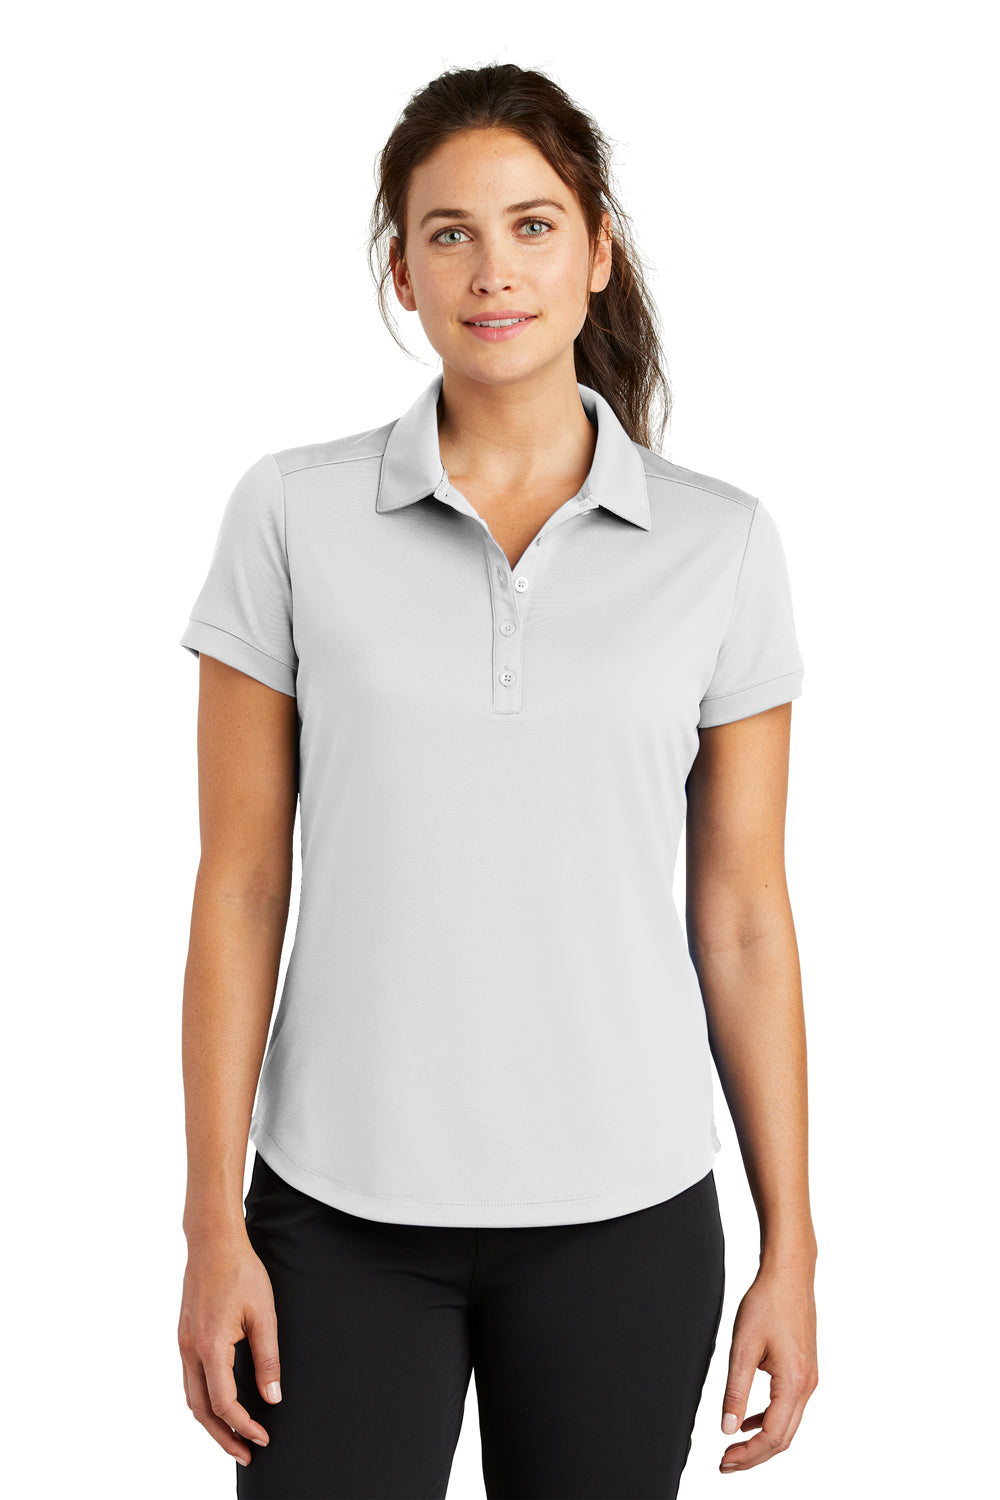 Nike 811807 Womens Players Dri-Fit Moisture Wicking Short Sleeve Polo Shirt White Front